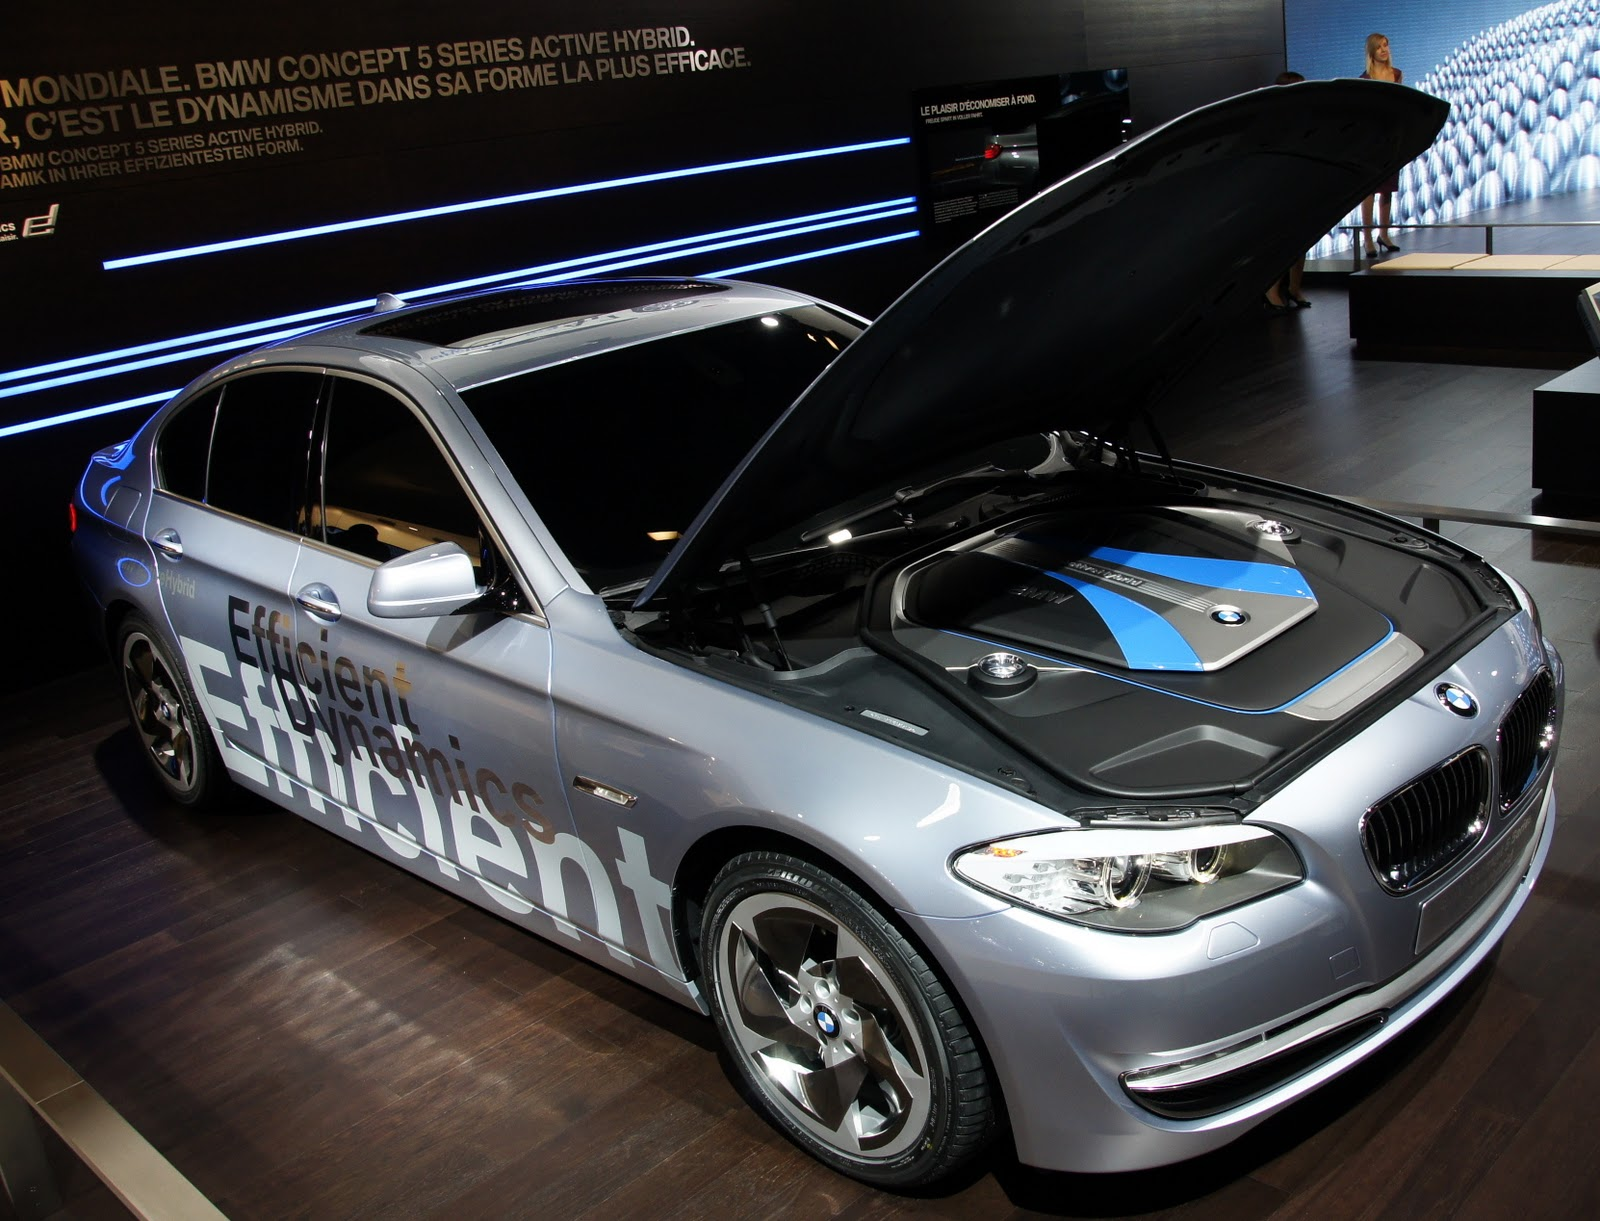 2010 BMW 5 Series ActiveHybrid Concept - Car Pictures